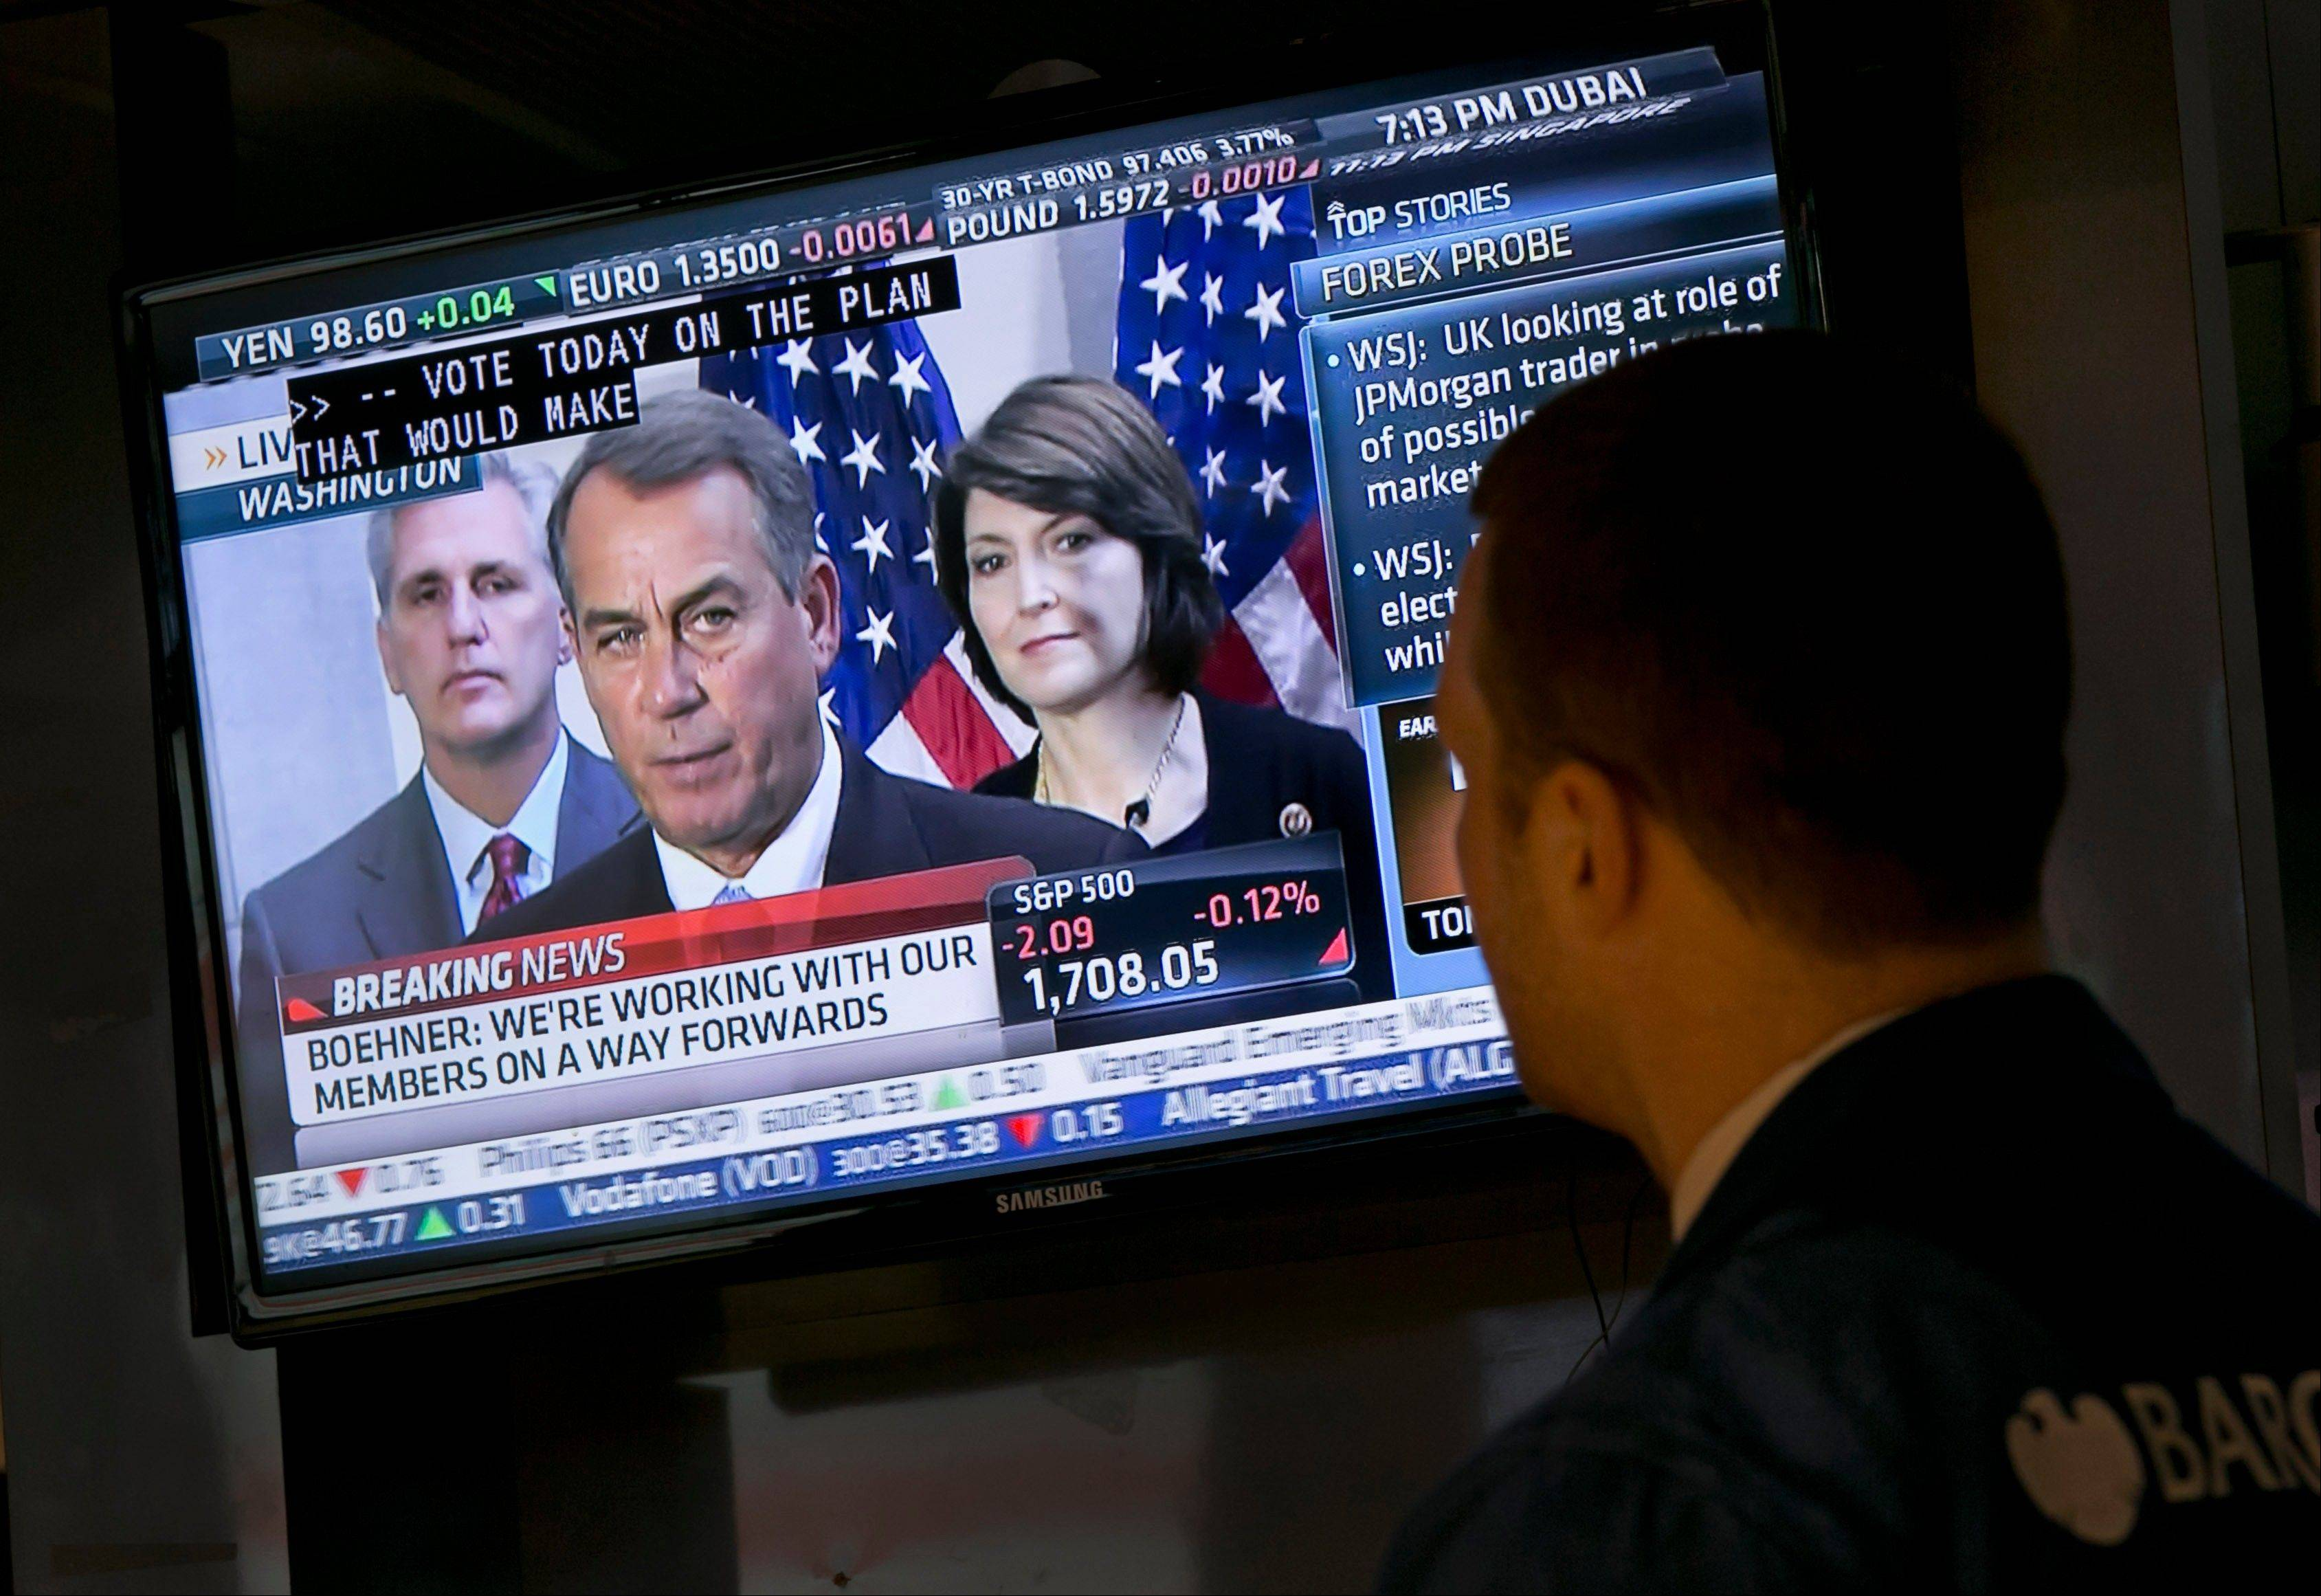 A trader watches a television monitor on the floor of the New York Stock Exchange showing a Washington news conference by House Speaker John Boehner on Tuesday.